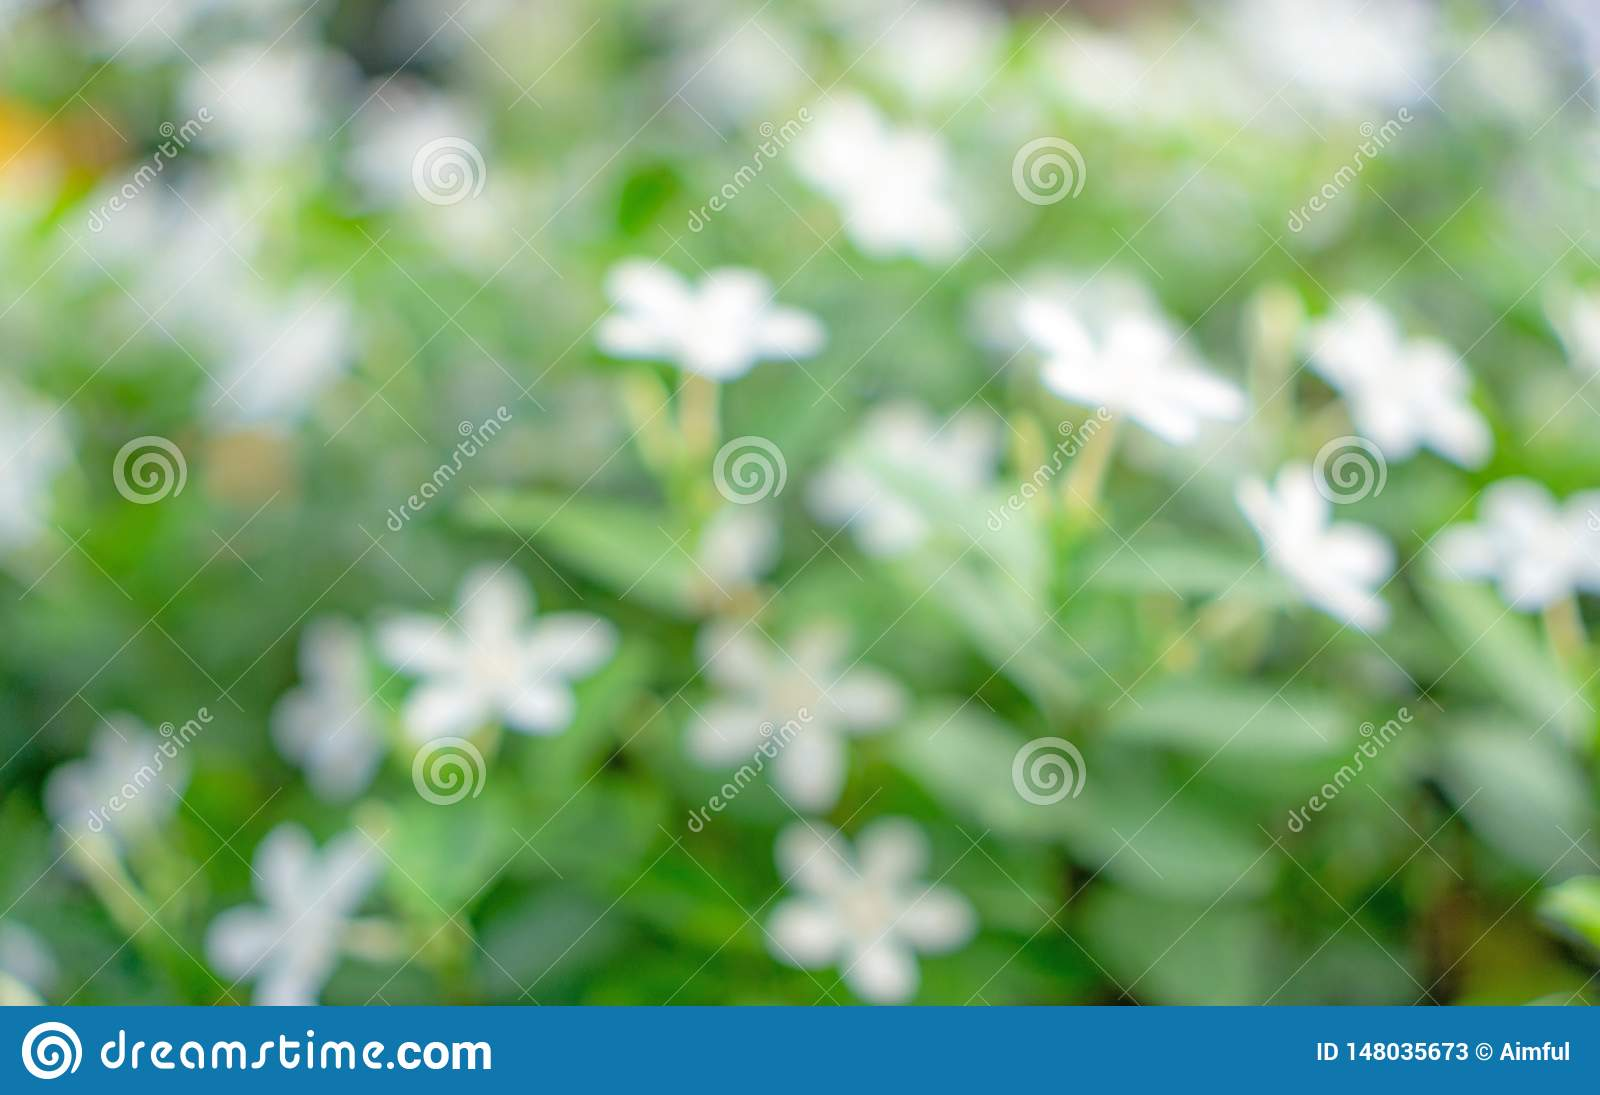 Abstract image from greenery leaf nature, bokeh photo of fresh soft white flower blooming on green leaves blurred background